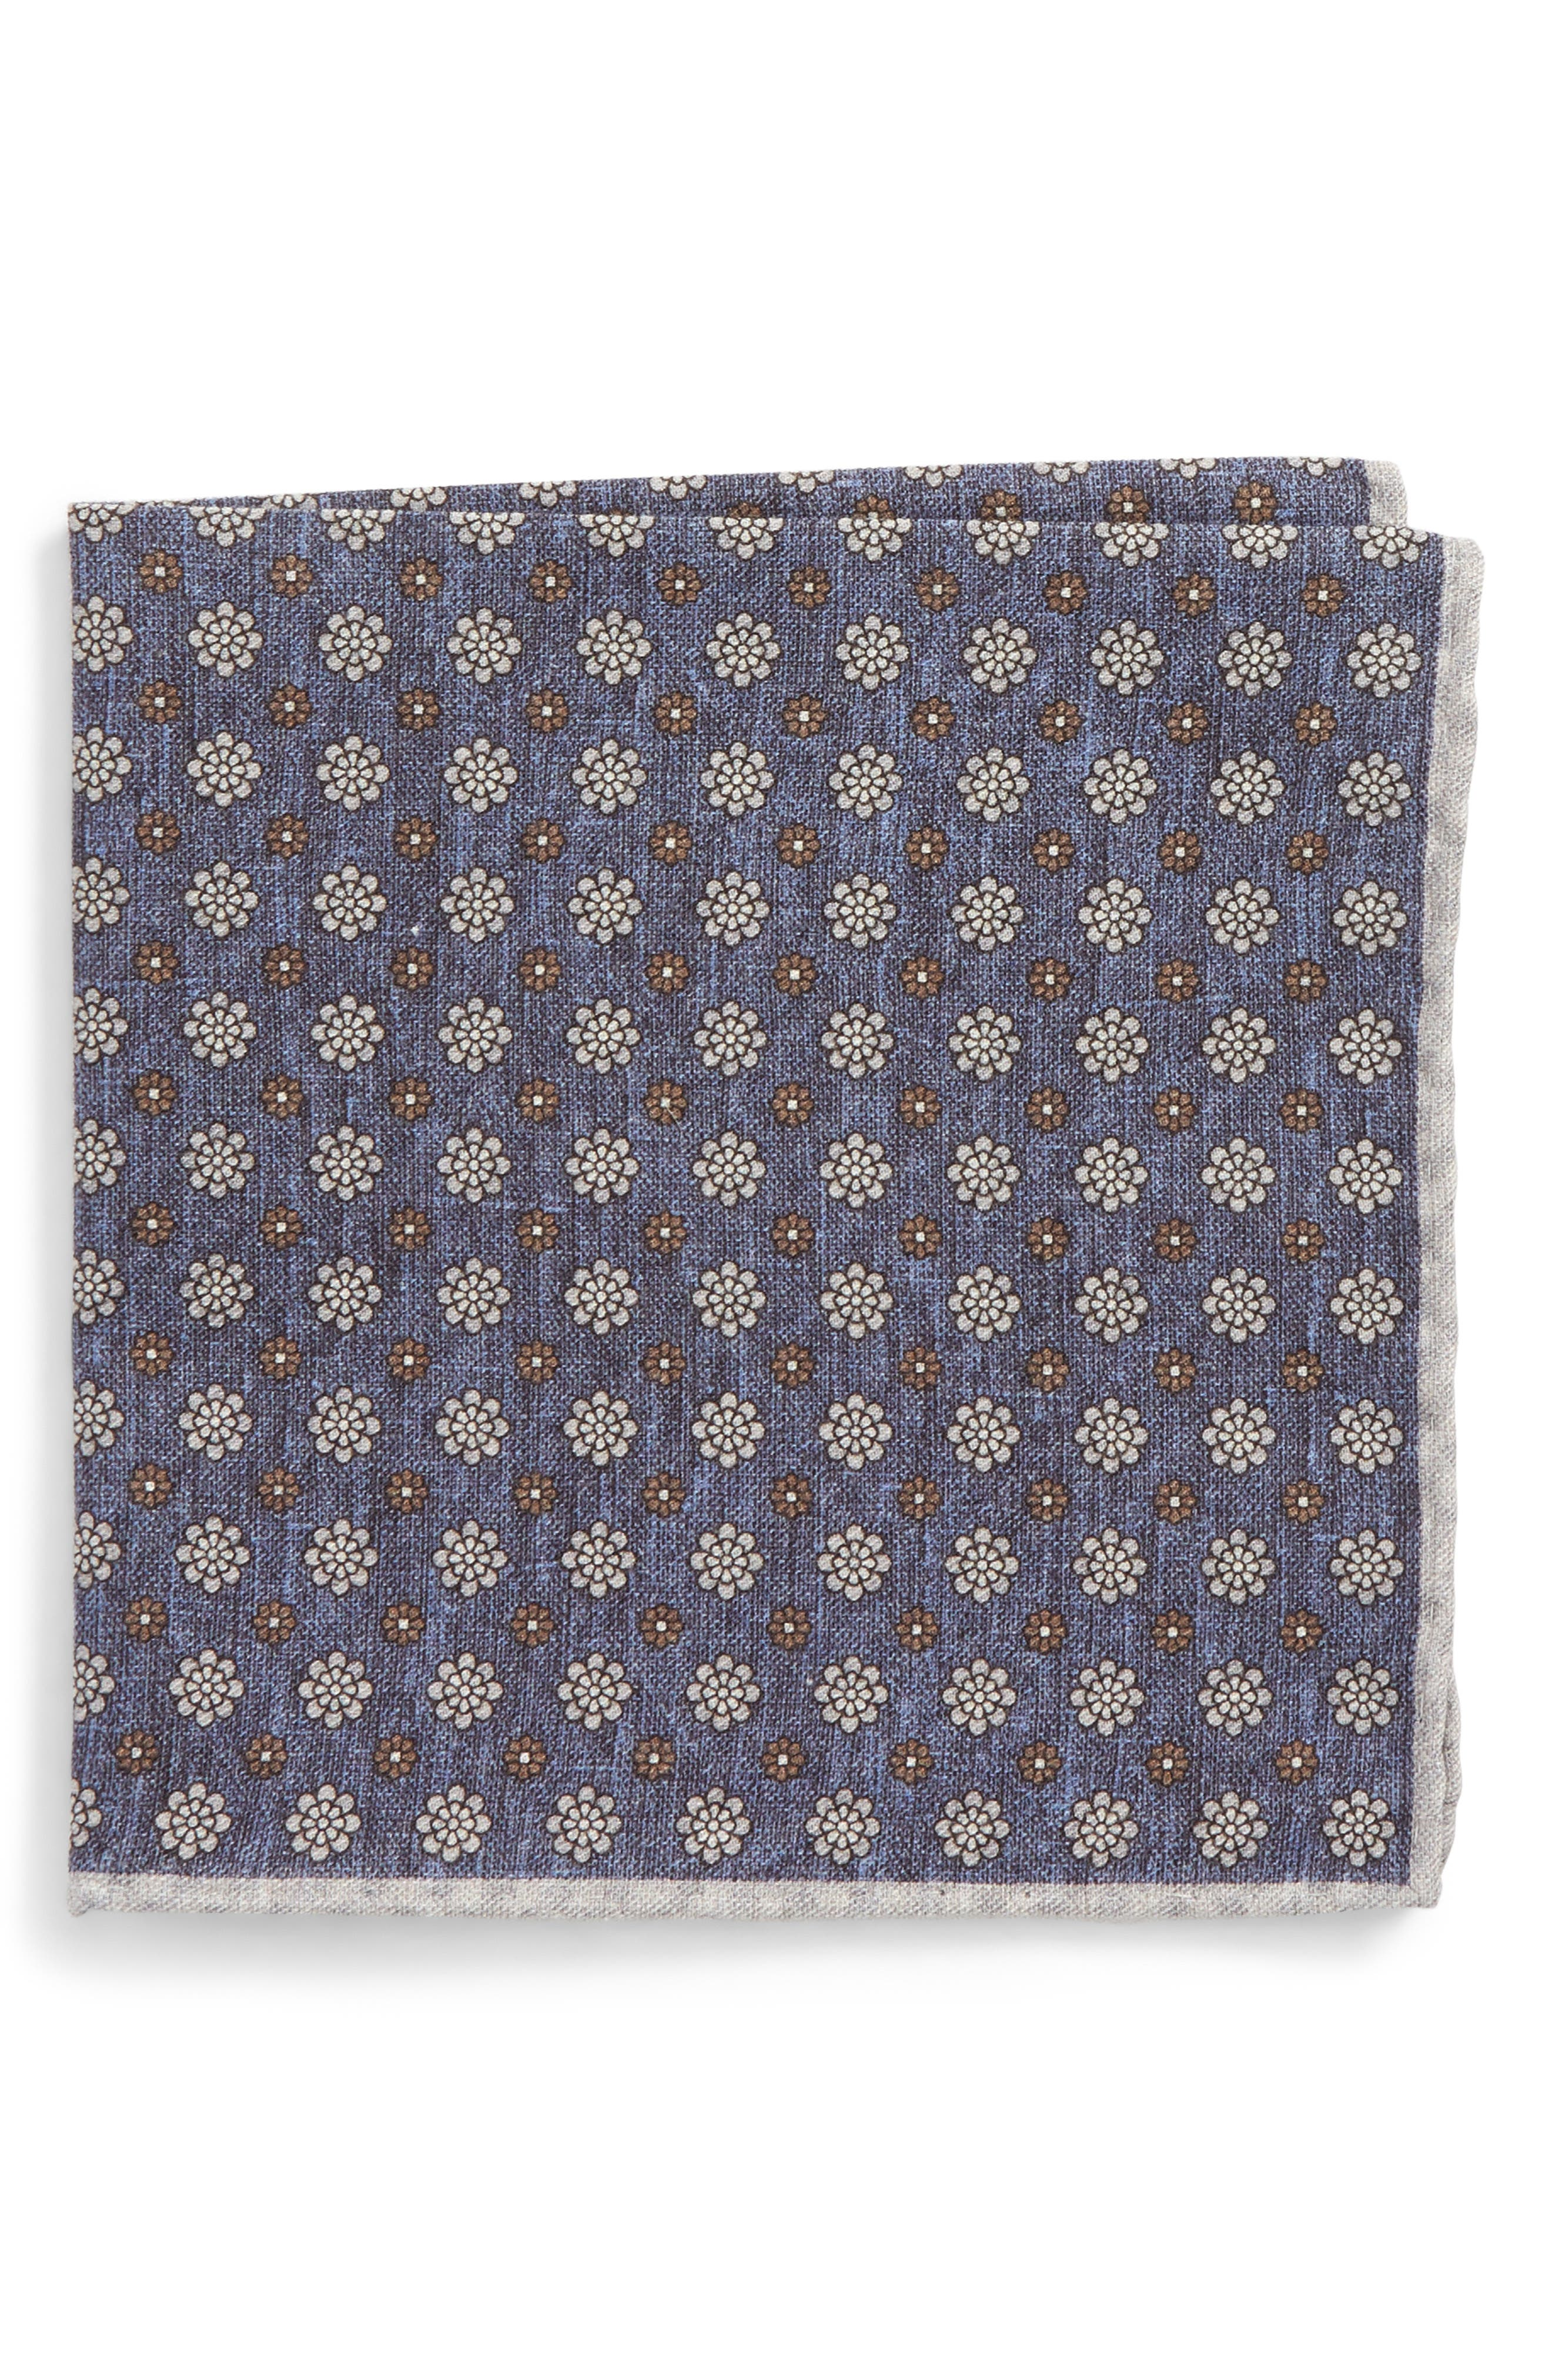 Medallion Wool & Cotton Pocket Square,                         Main,                         color, Navy